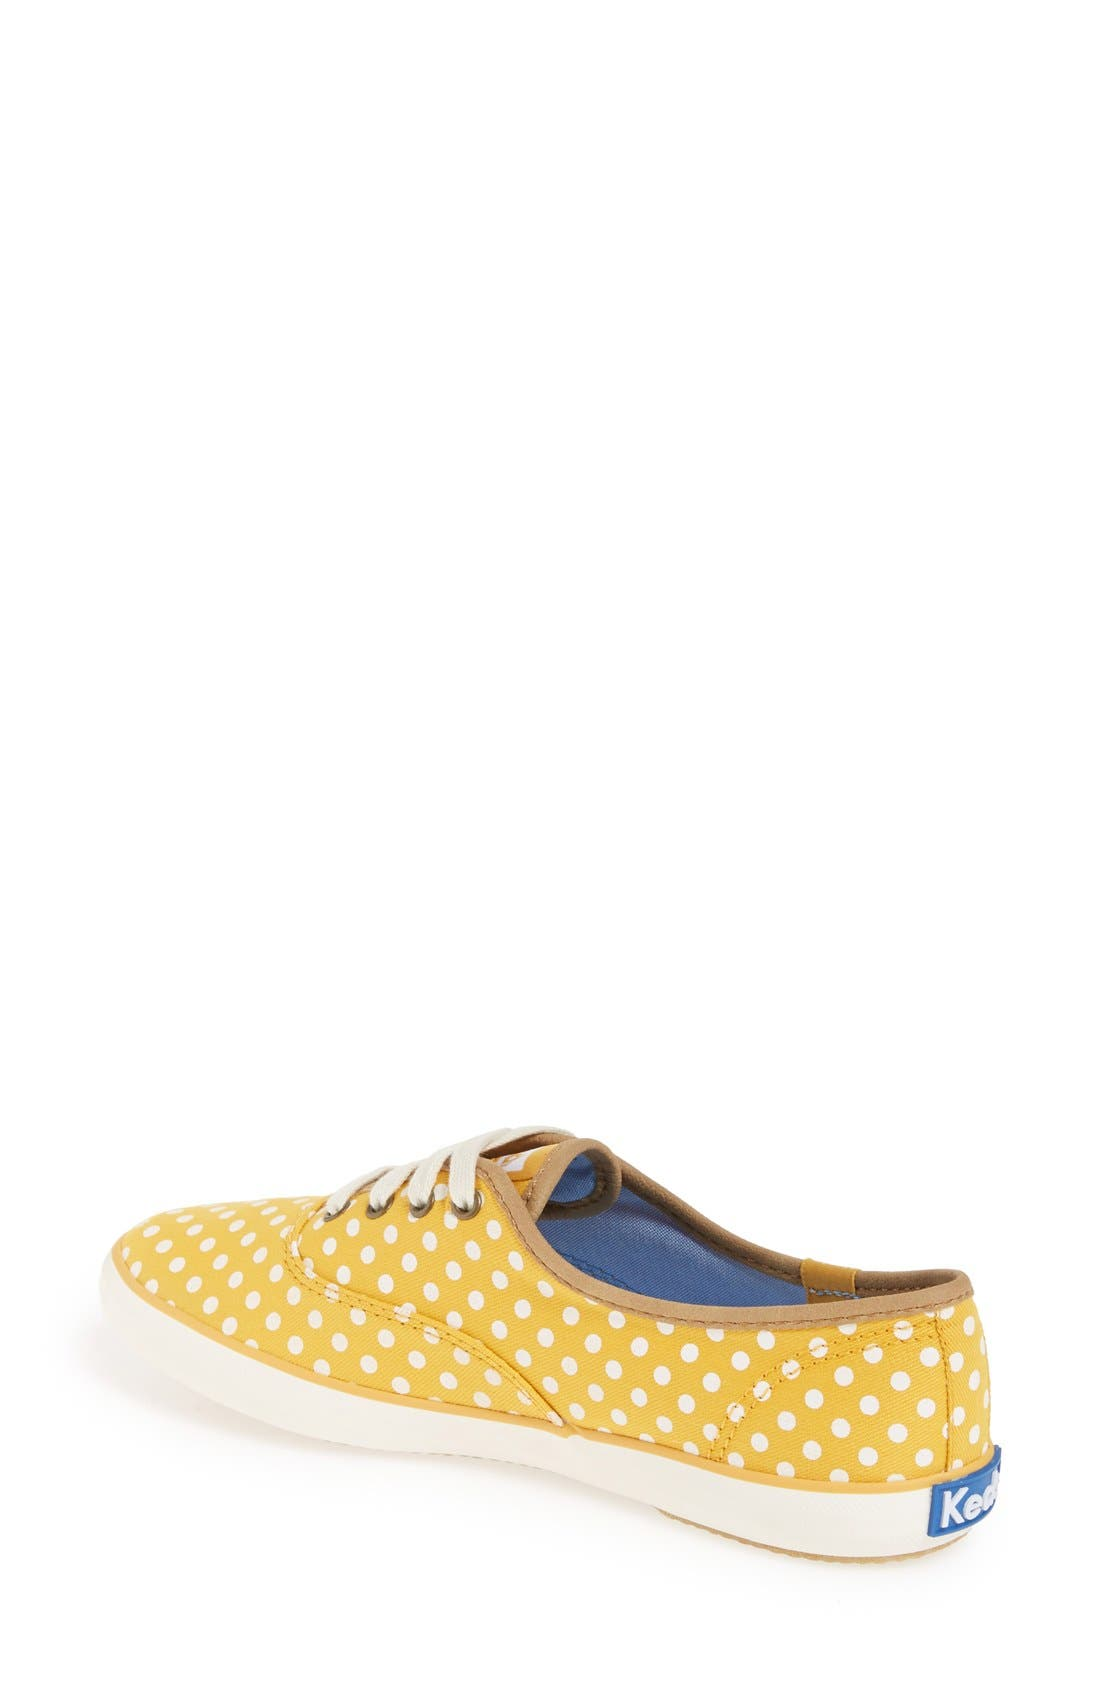 Alternate Image 2  - Keds® 'Champion - Dot' Sneaker (Women)